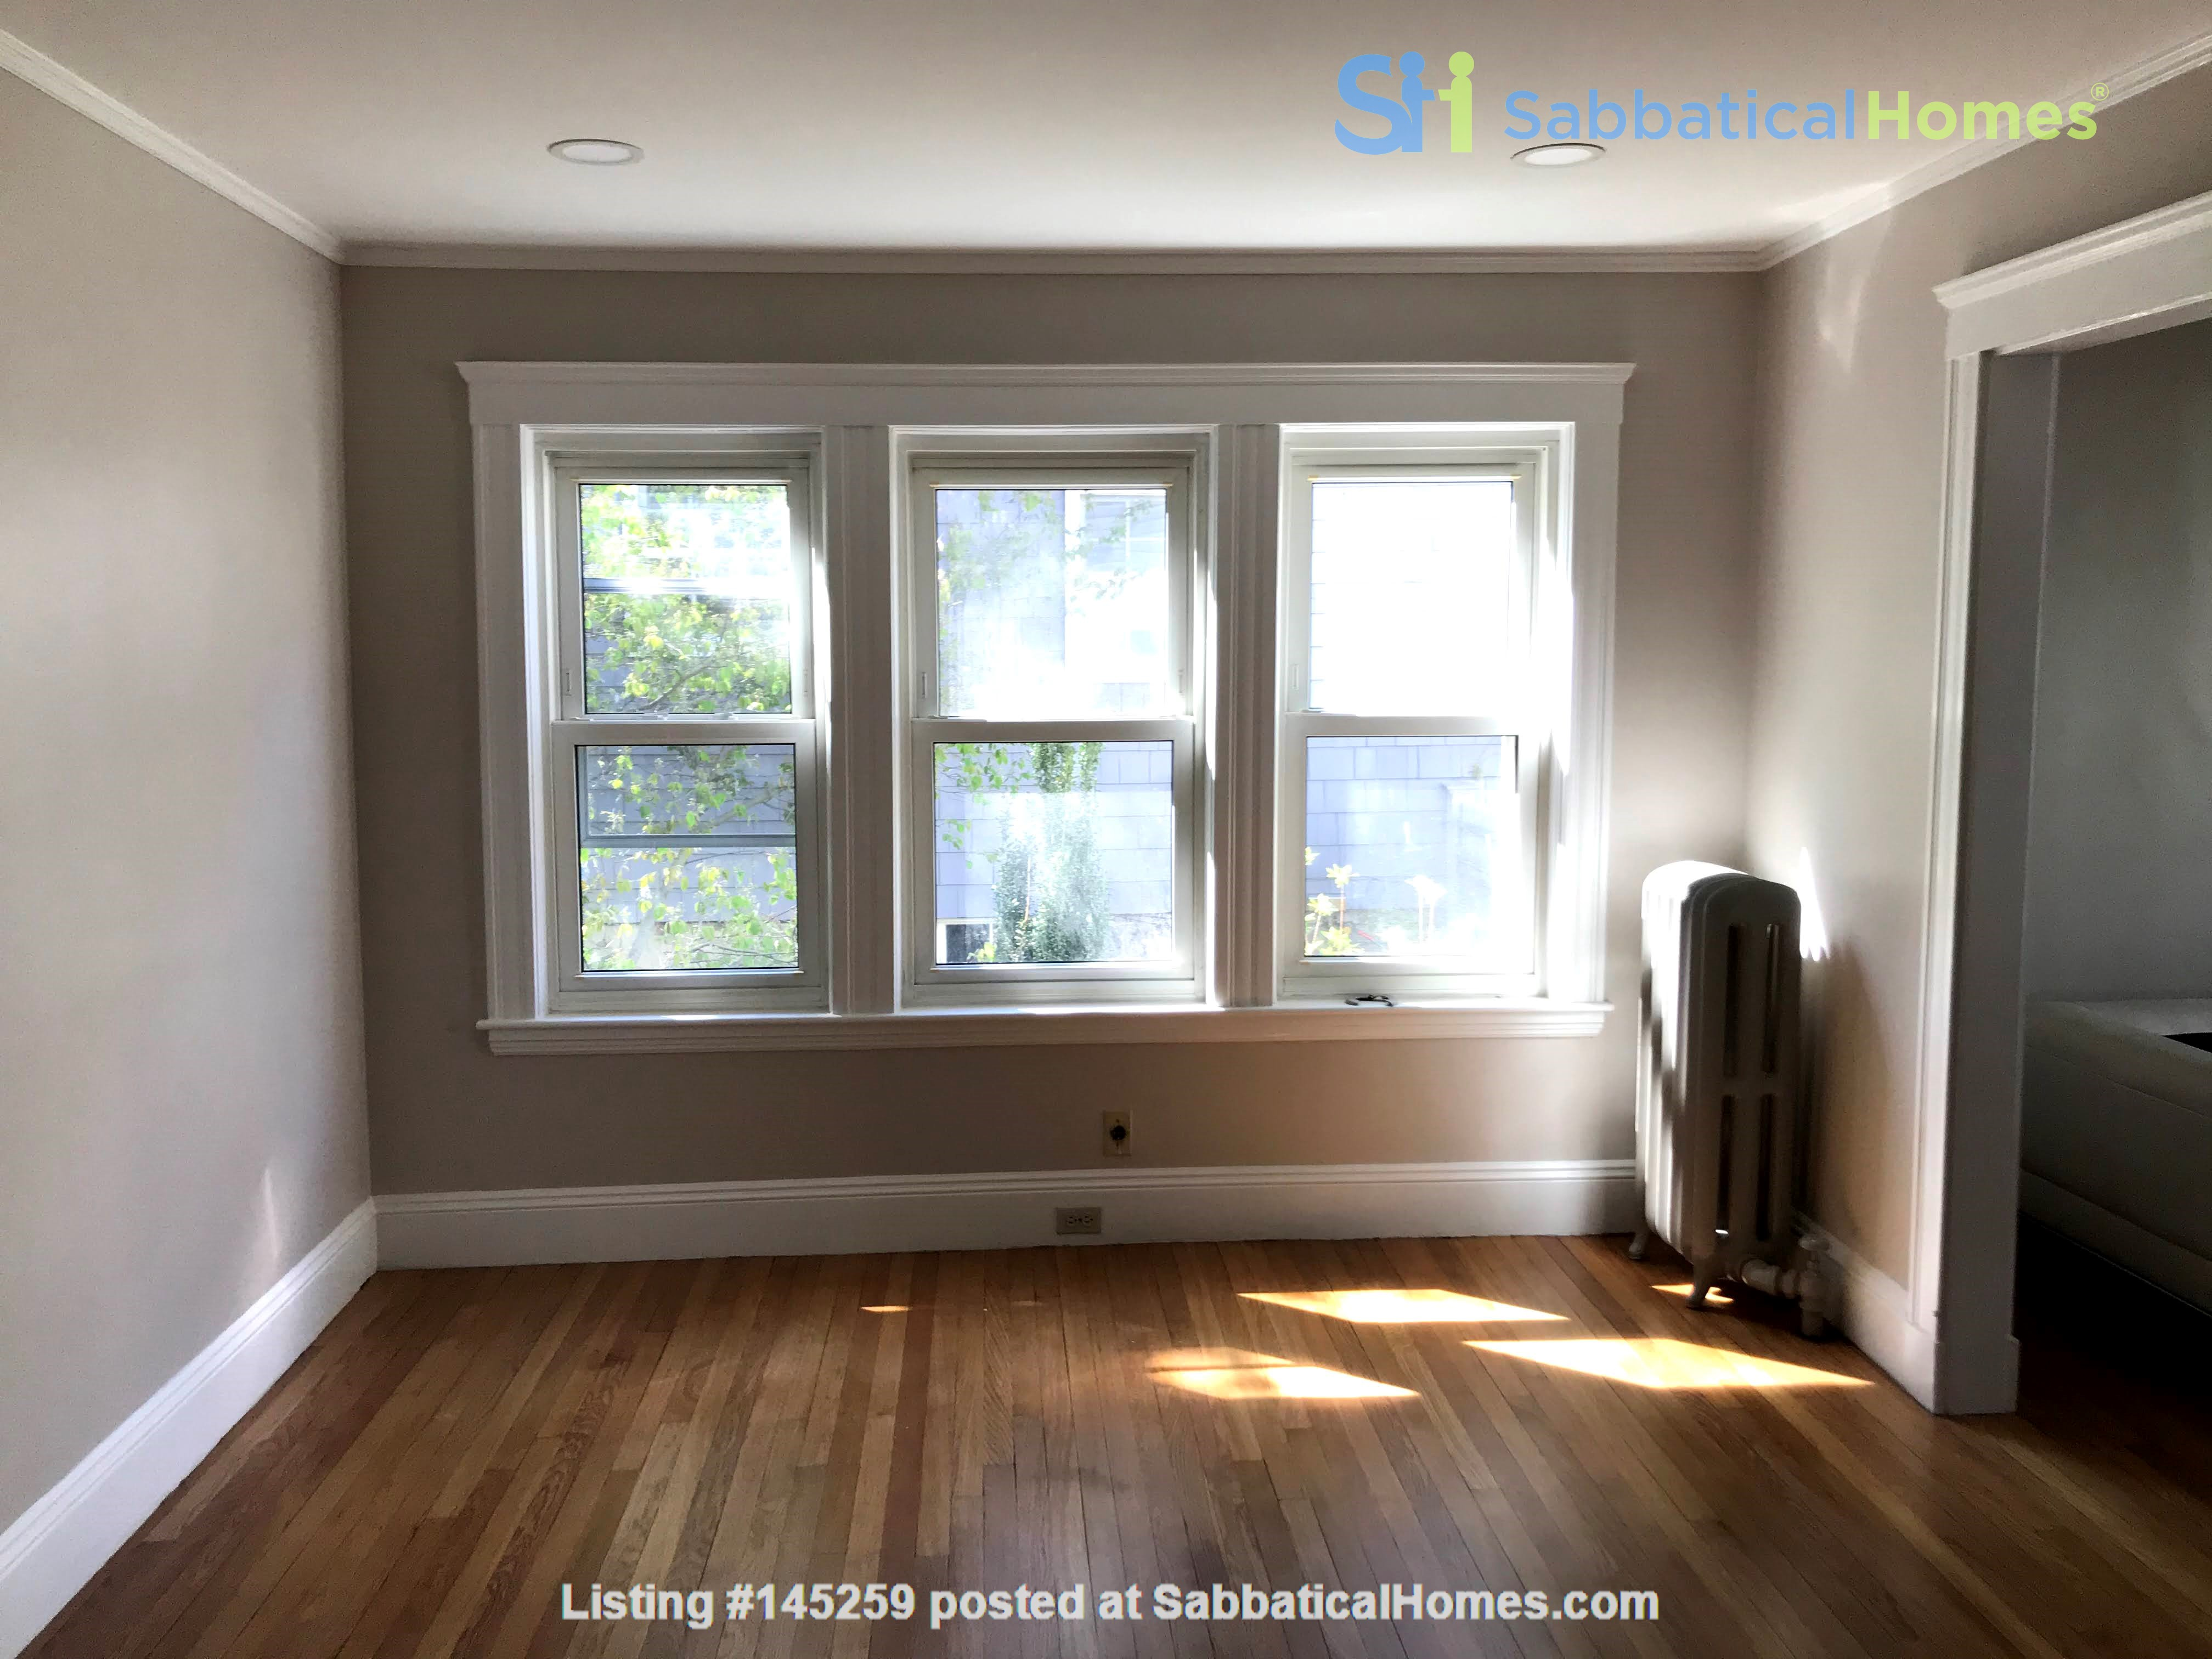 SOMERVILLE NEWLY RENOVATED APARTMENT WALKING DISTANCE FROM HARVARD Home Rental in Somerville, Massachusetts, United States 5